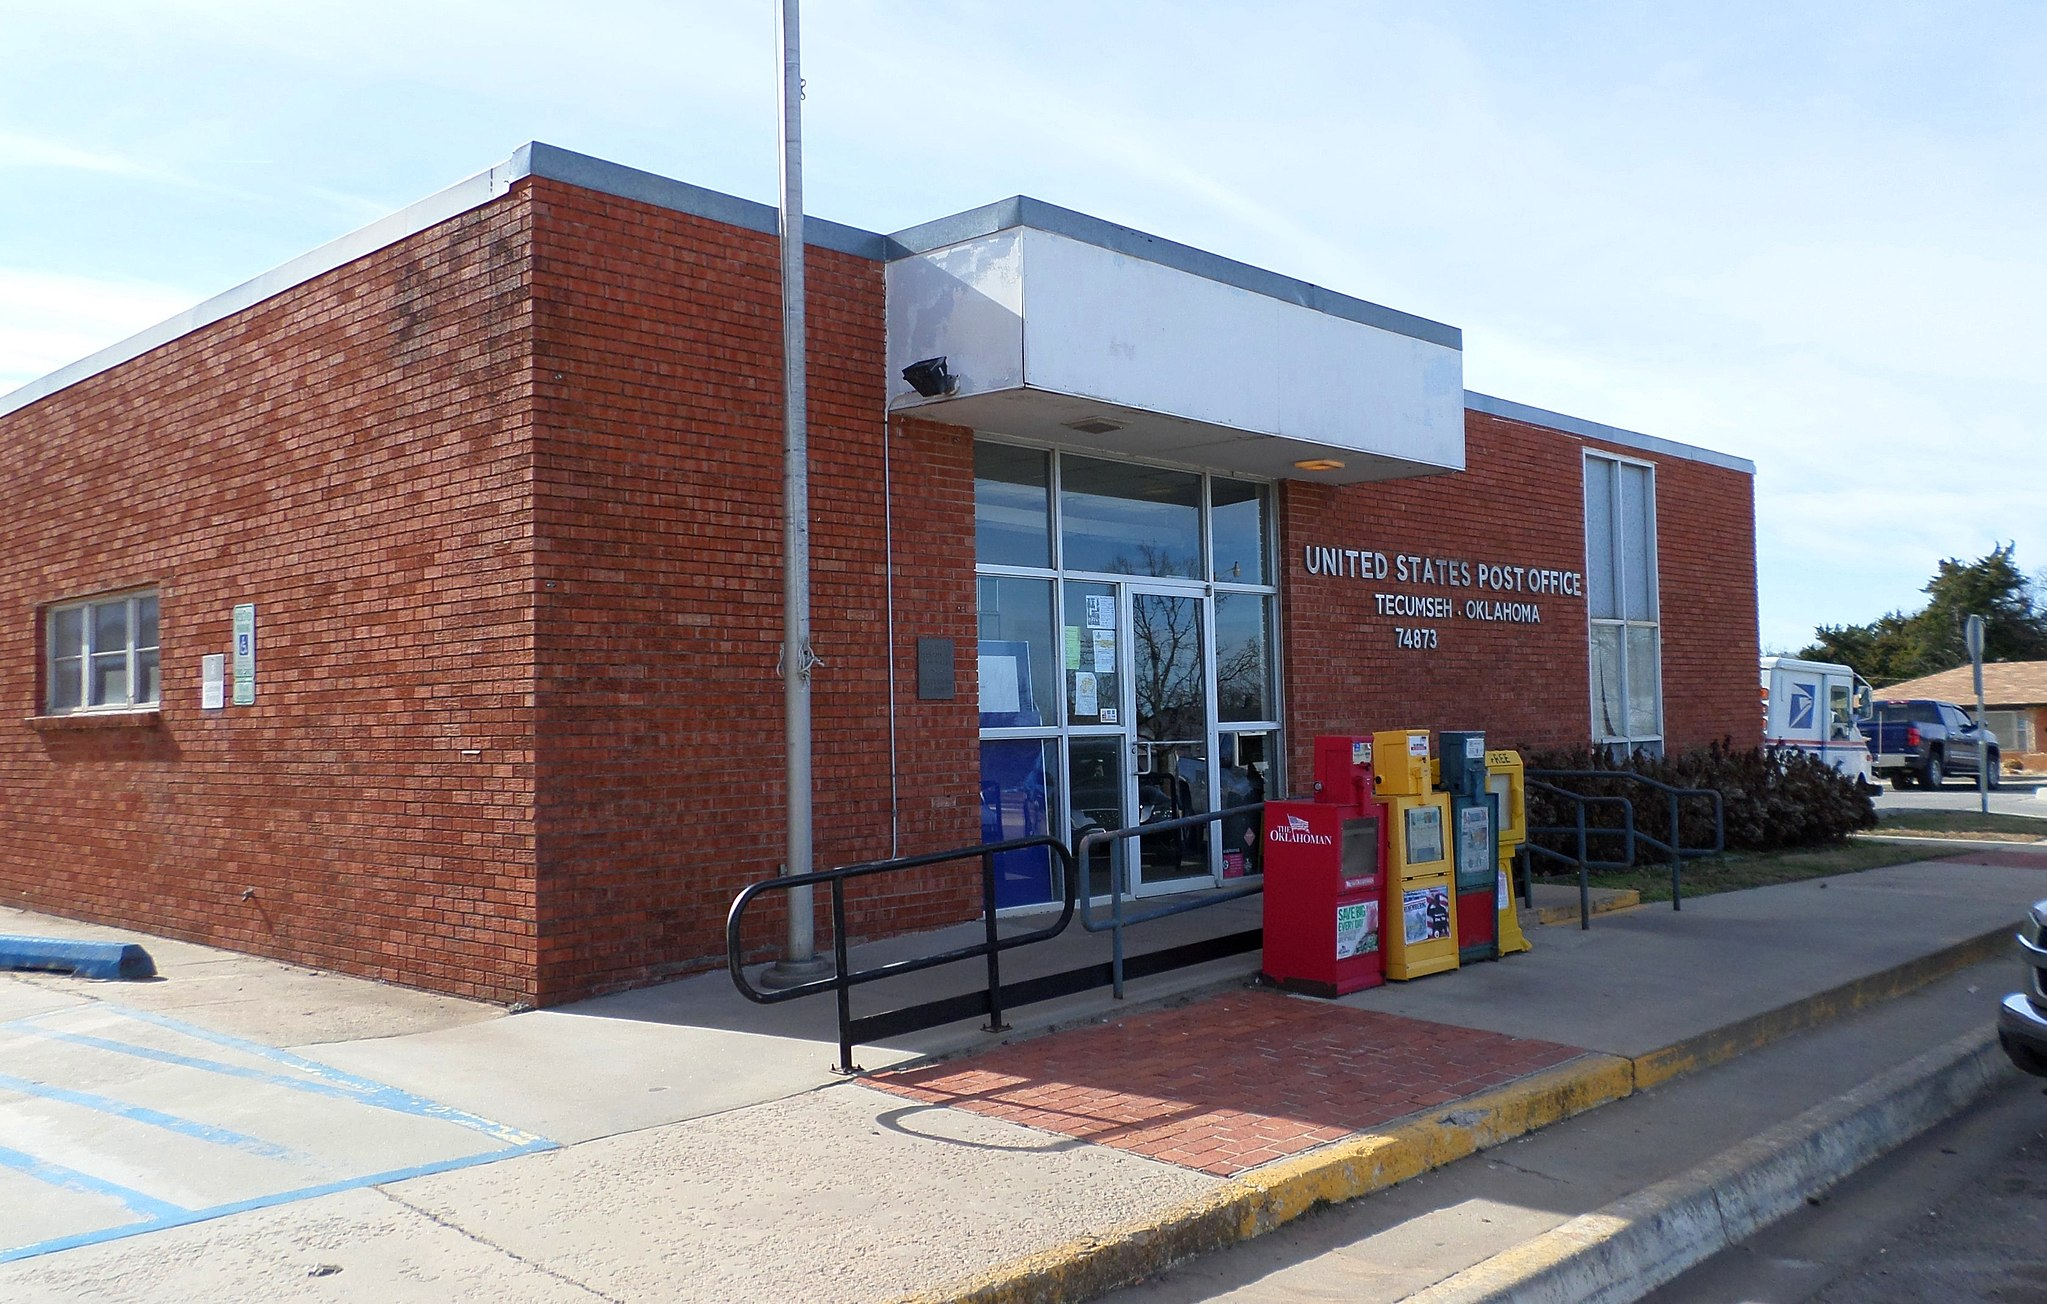 Tecumseh Post Office   By kennethaw88 (Own work) [CC BY 4.0 (http://creativecommons.org/licenses/by/4.0)], via Wikimedia Commons